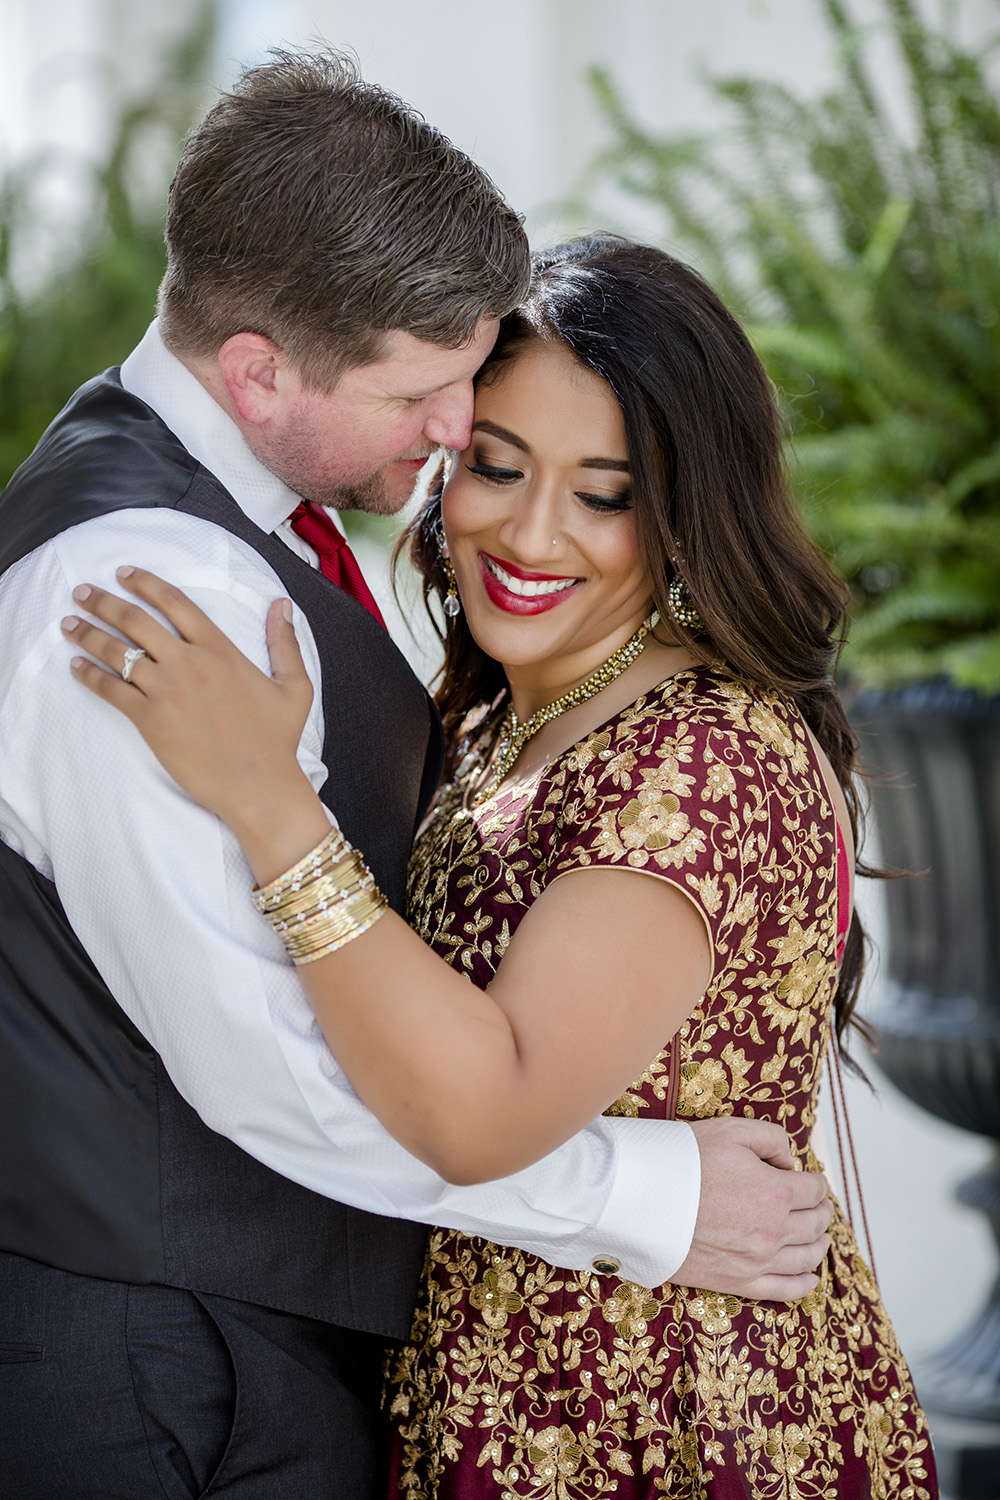 Rupal_Jason_Engagements_0441.JPG